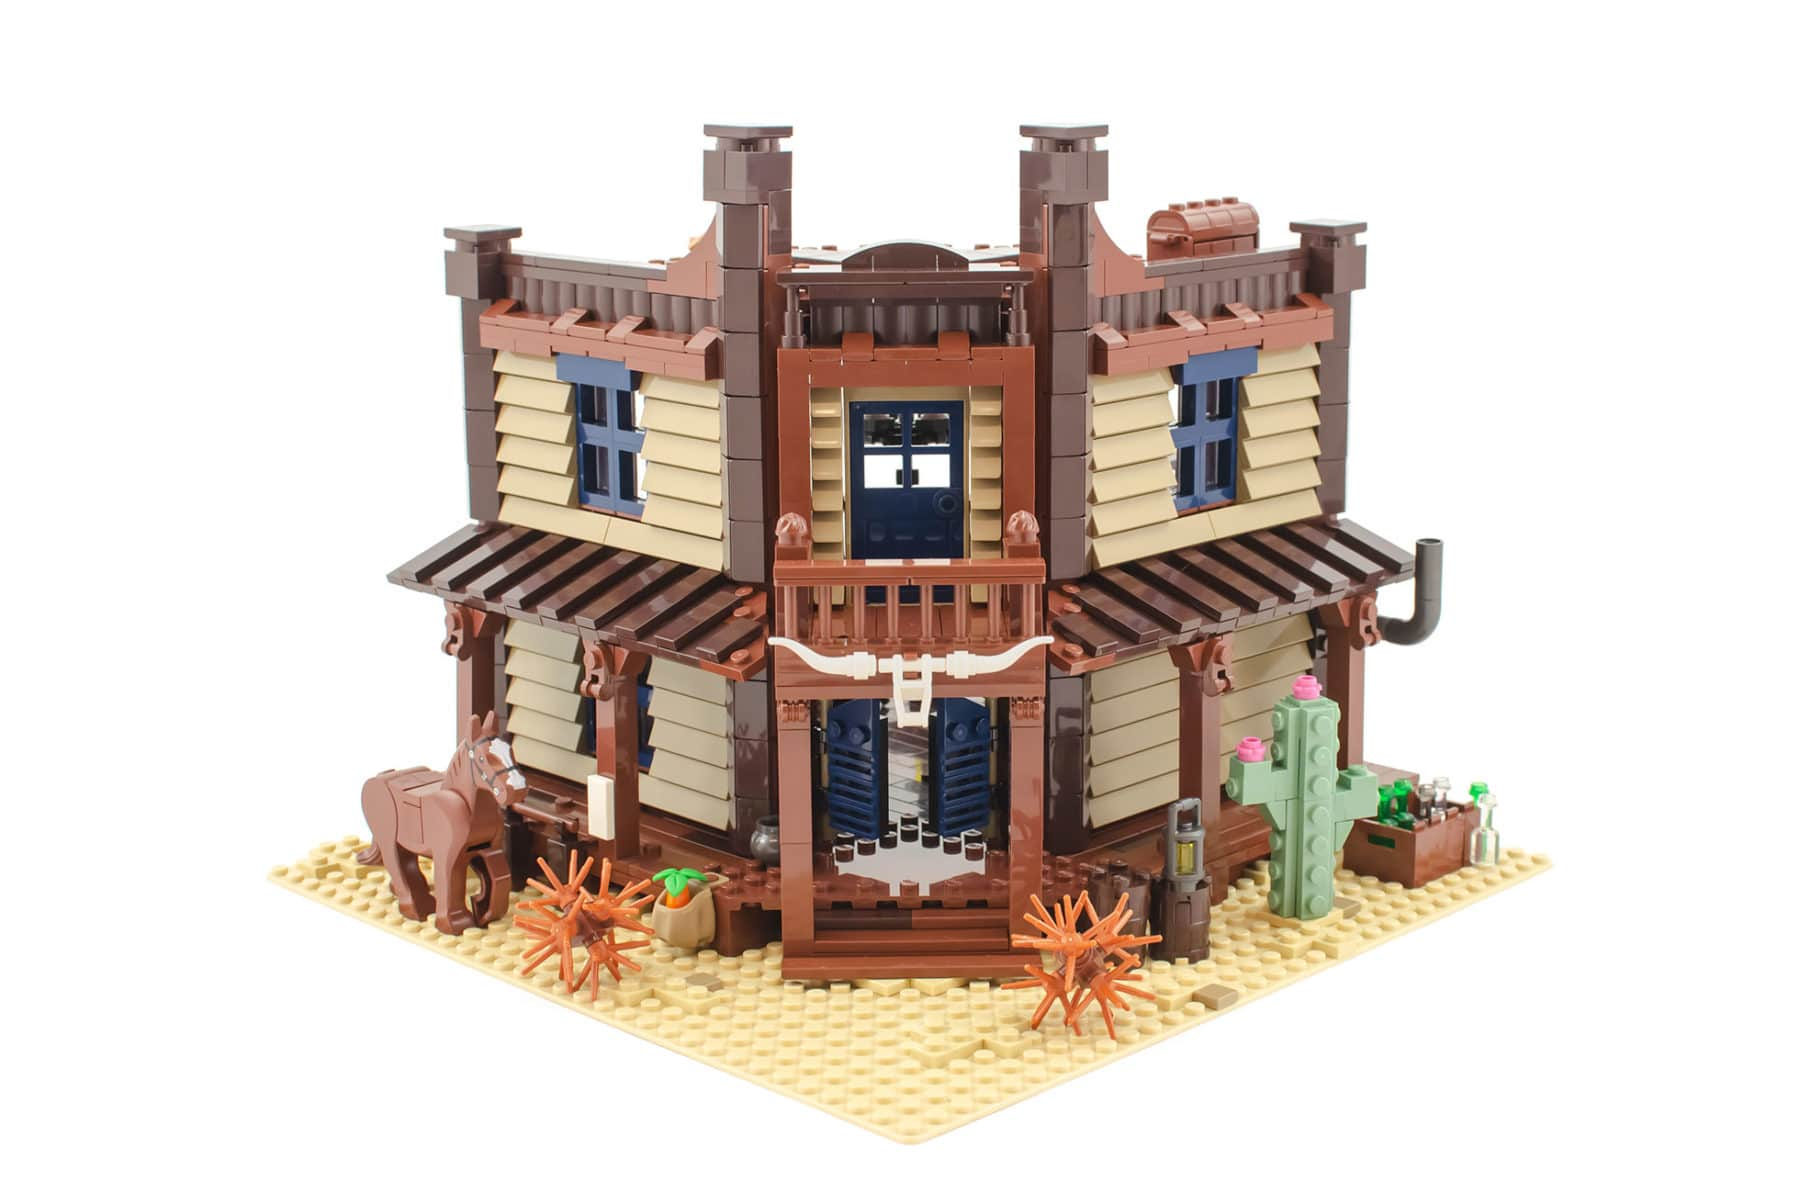 Bricklink AFOL Designer Program: Wild West Saloon